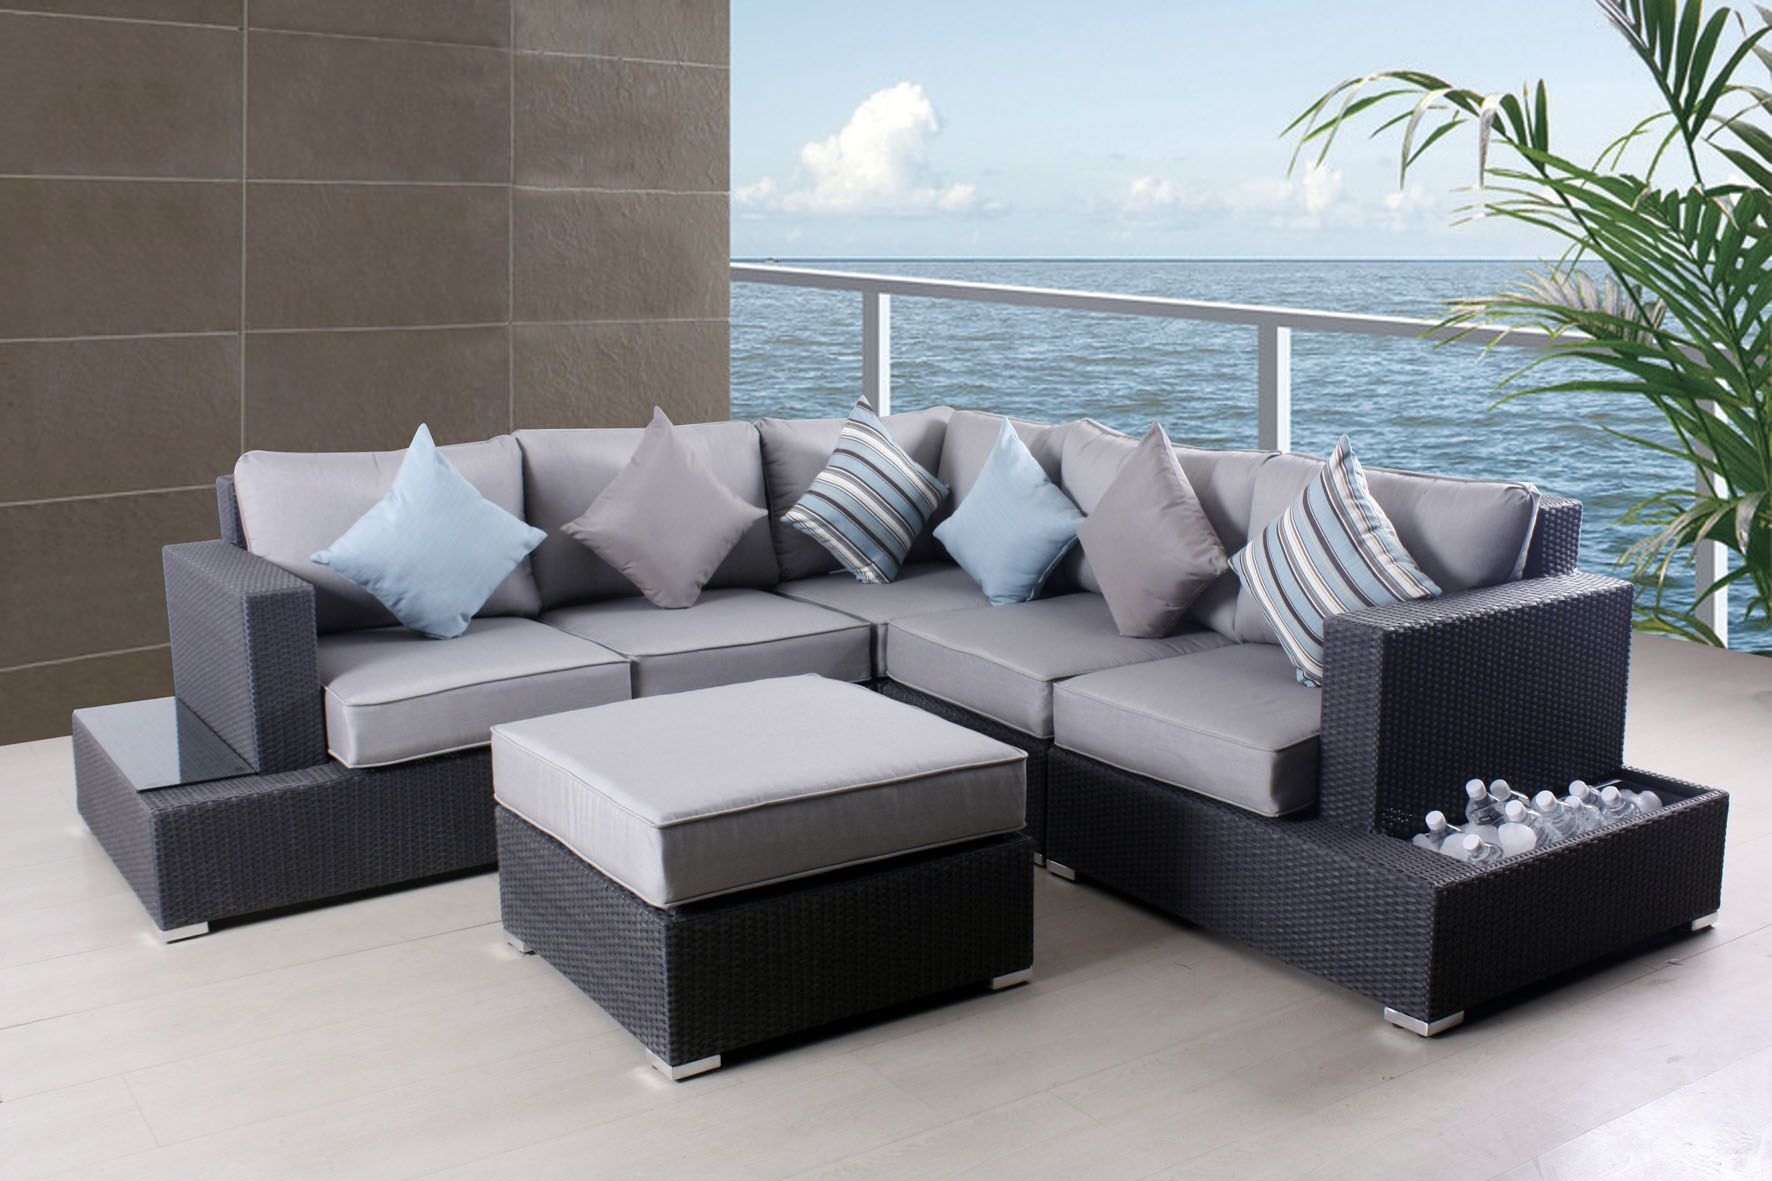 Likeness of Easy Tips For Thomasville Outdoor Furniture